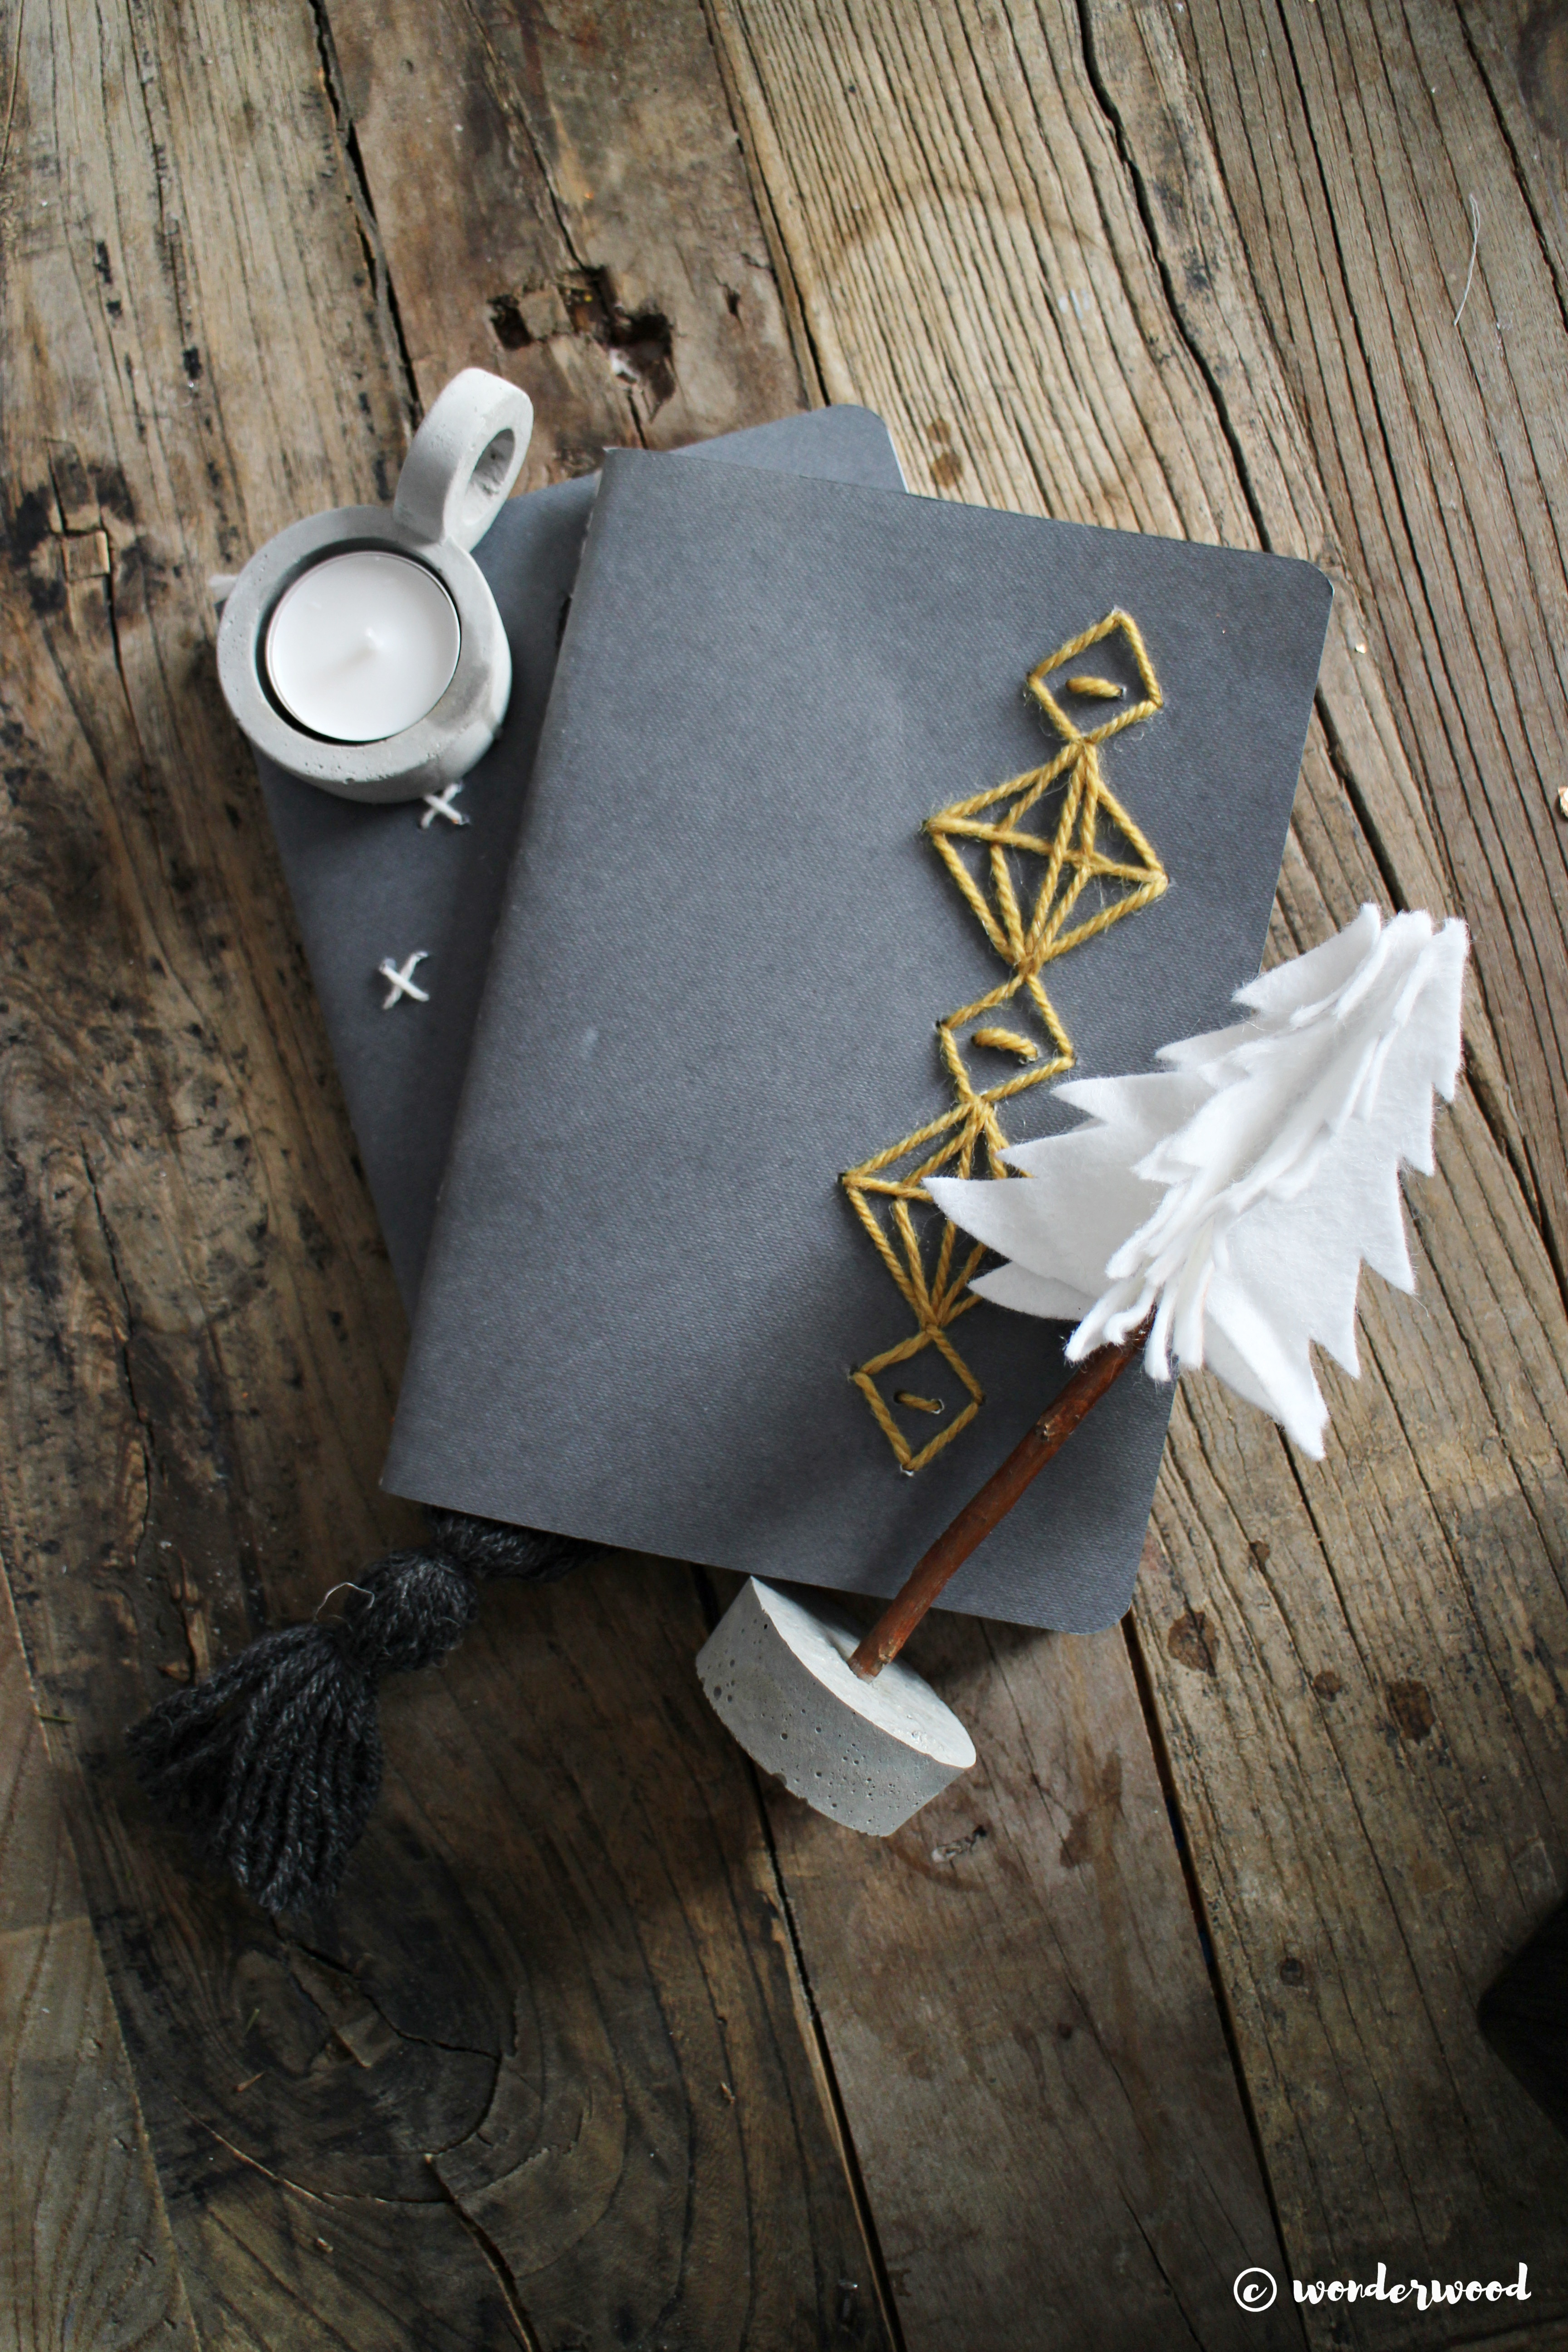 TIPS TIL HJEMMELAGDE JULEGAVER 5: diy broderte notatbøker // HOMEMADE CHRISTMAS GIFTS IDEAS 5: diy embroidered notebooks